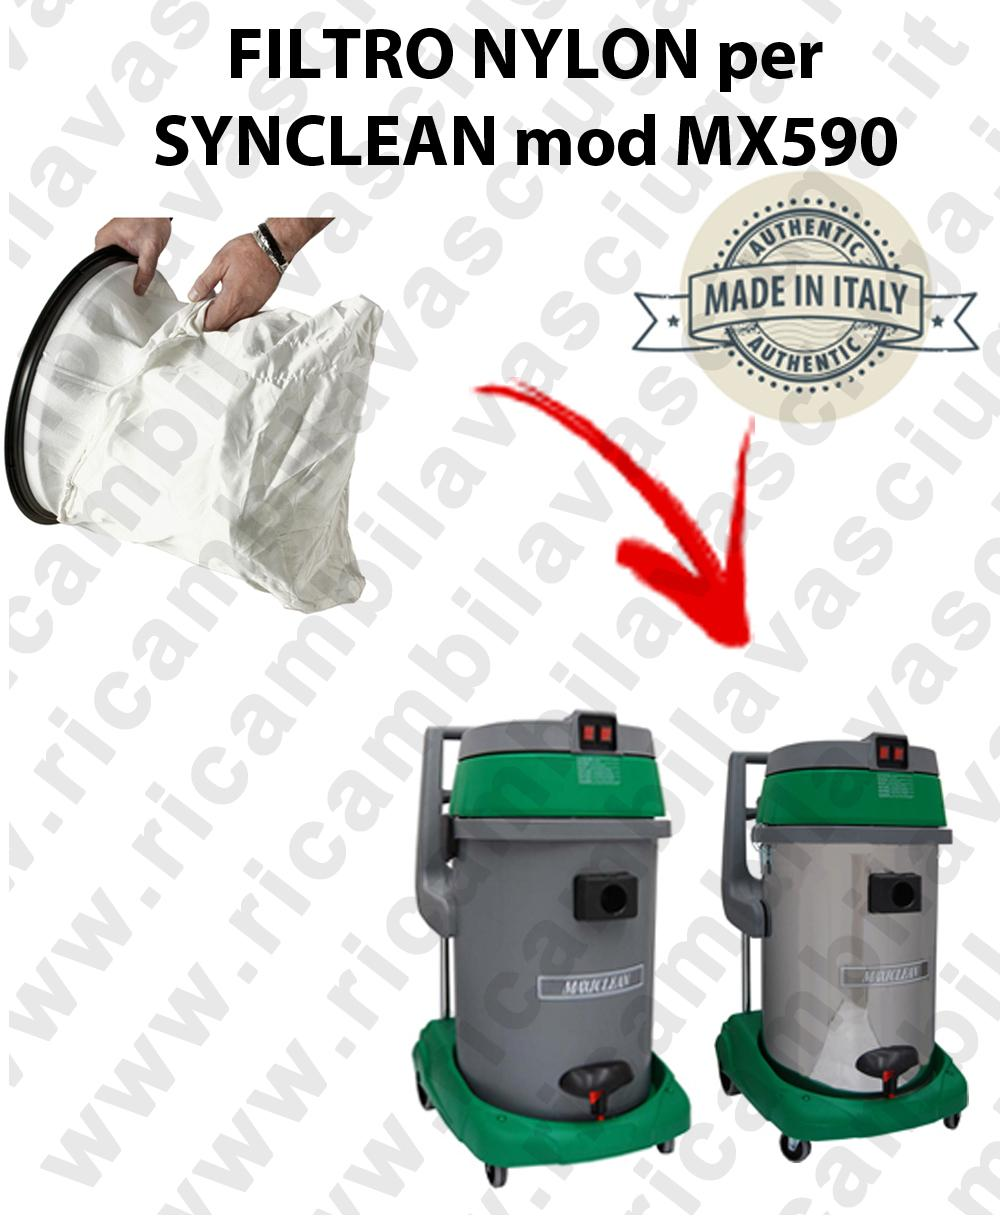 SACCO  FILTRO NYLON cod: 3001220 for vacuum cleaner MAXICLEAN model MX590 BY SYNCLEAN